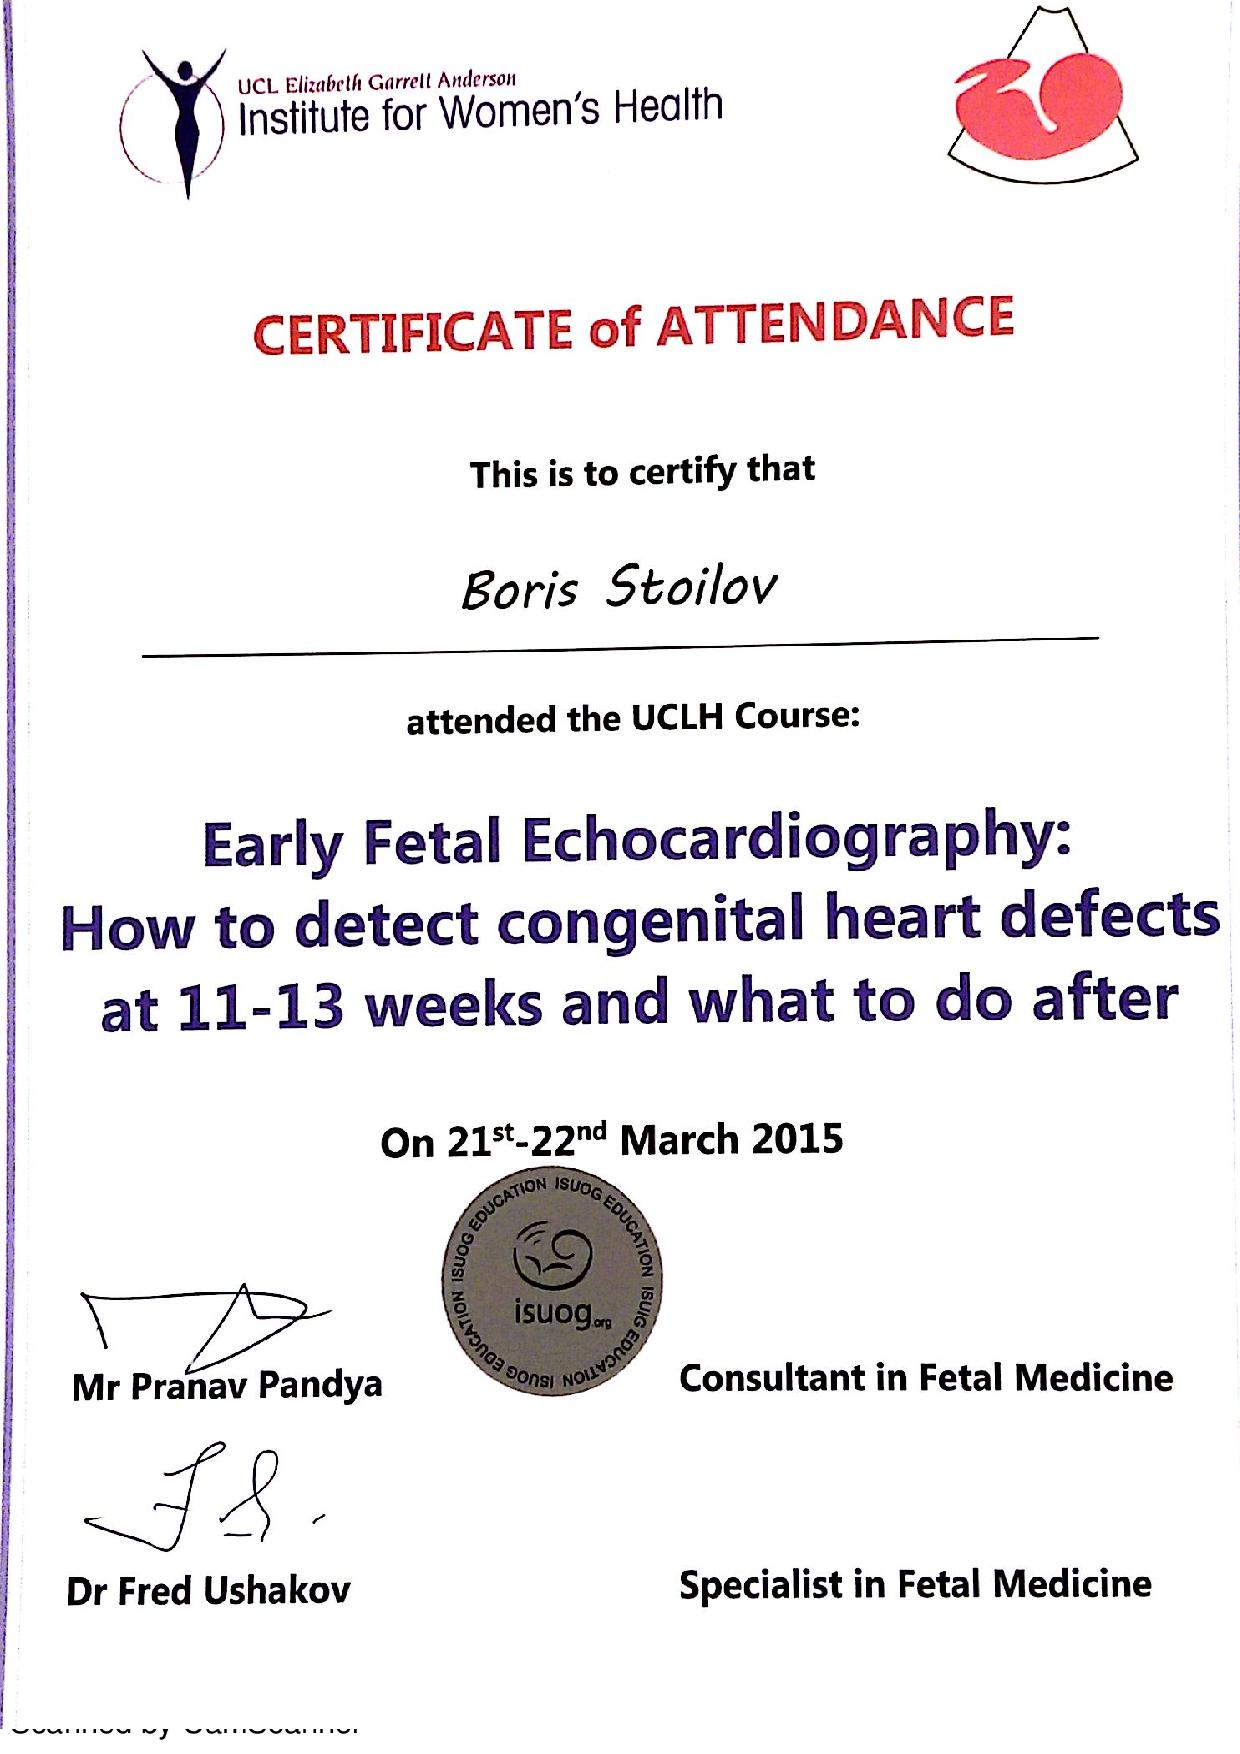 Early Fetal Echocardiography